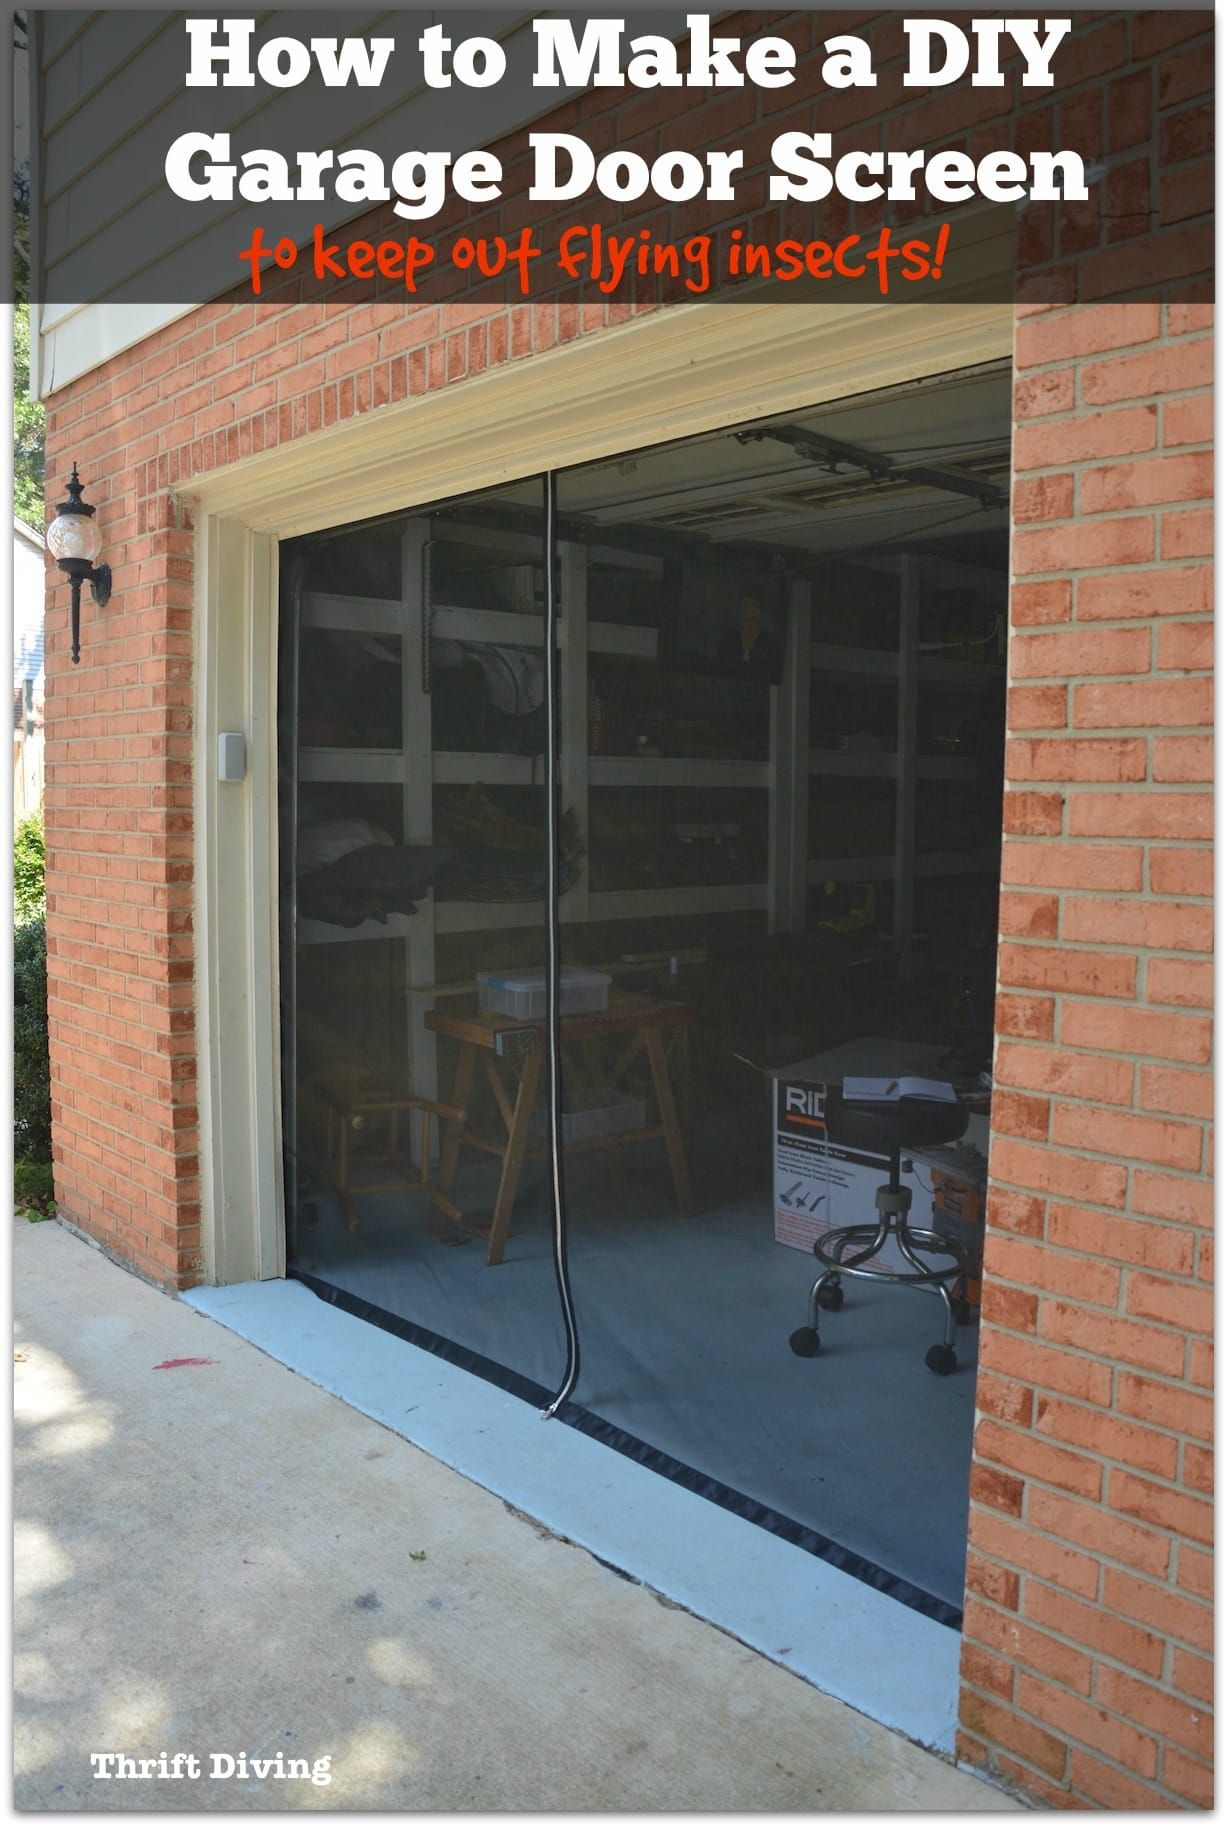 How To Make A Diy Garage Door Screen With A Zipper Garage Screen Door Diy Garage Door Diy Screen Door